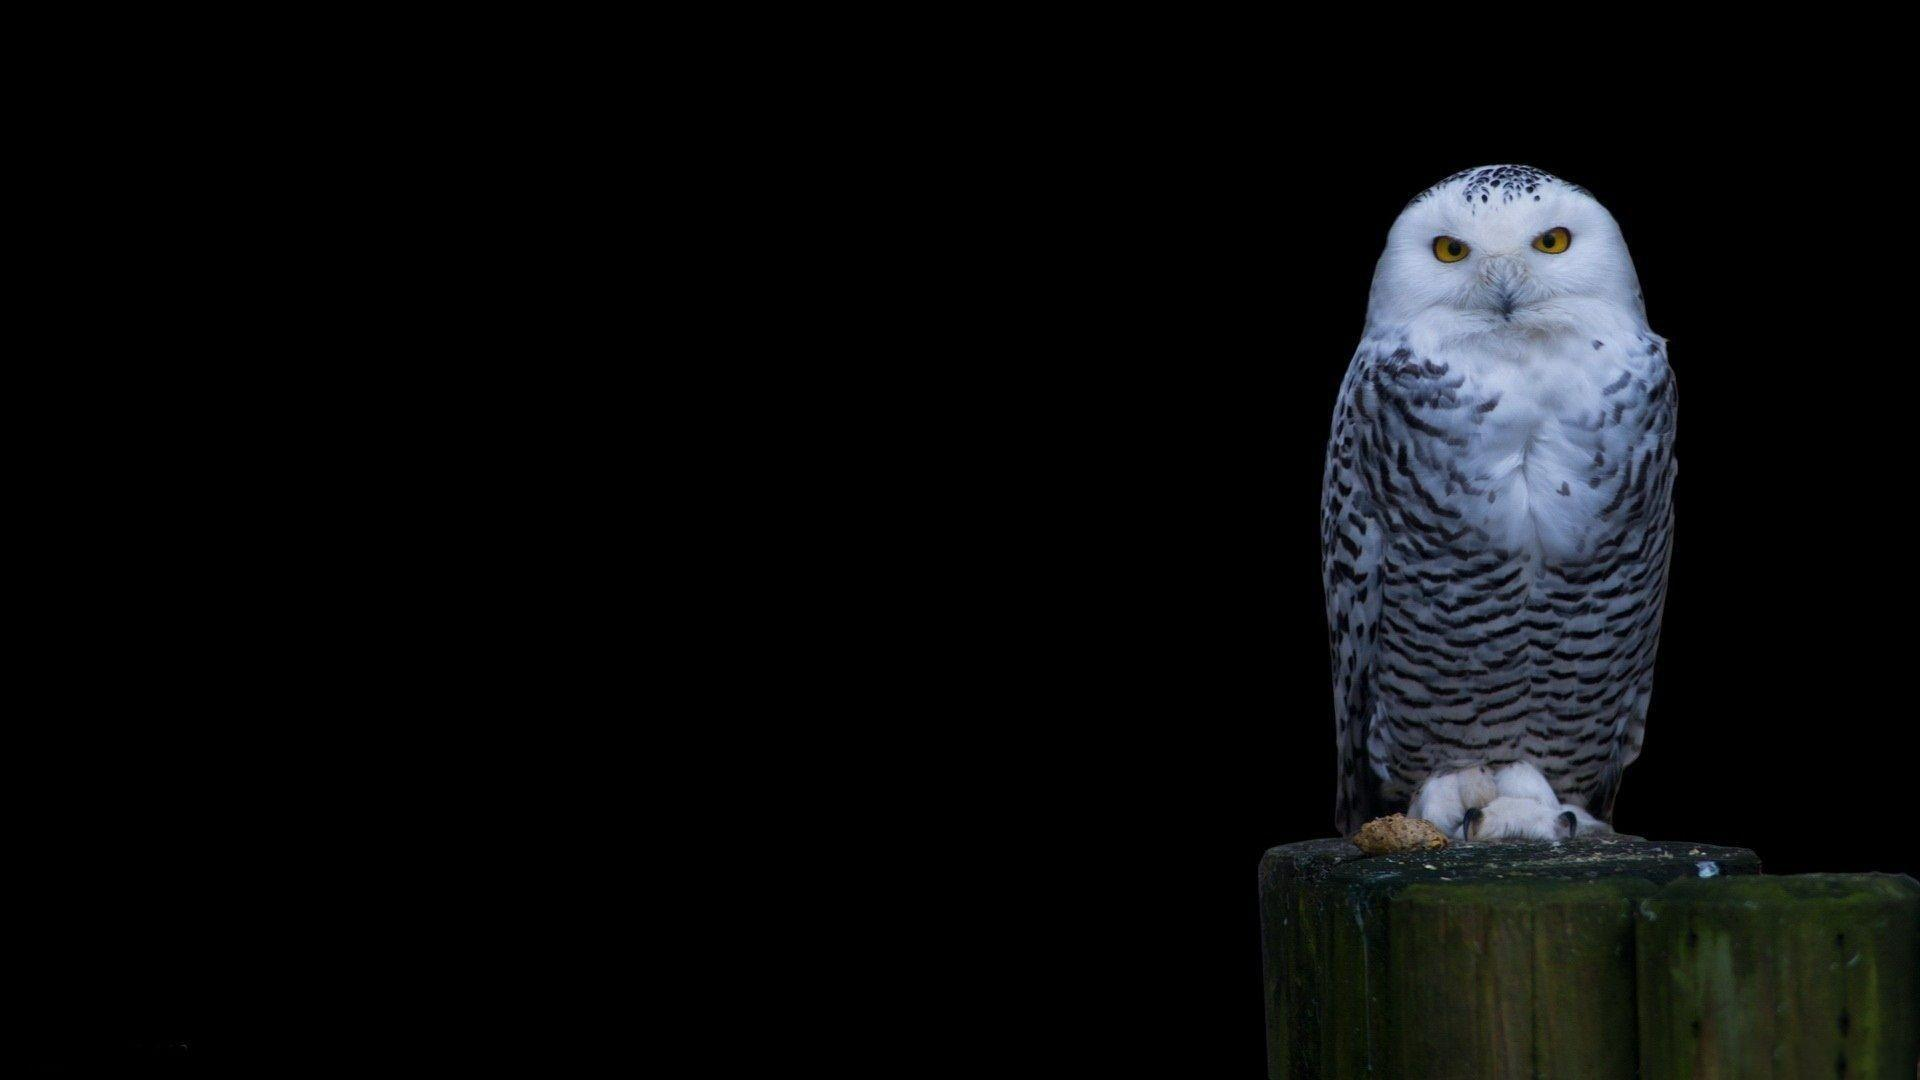 Snowy Owl Wallpapers - Wallpaper Cave